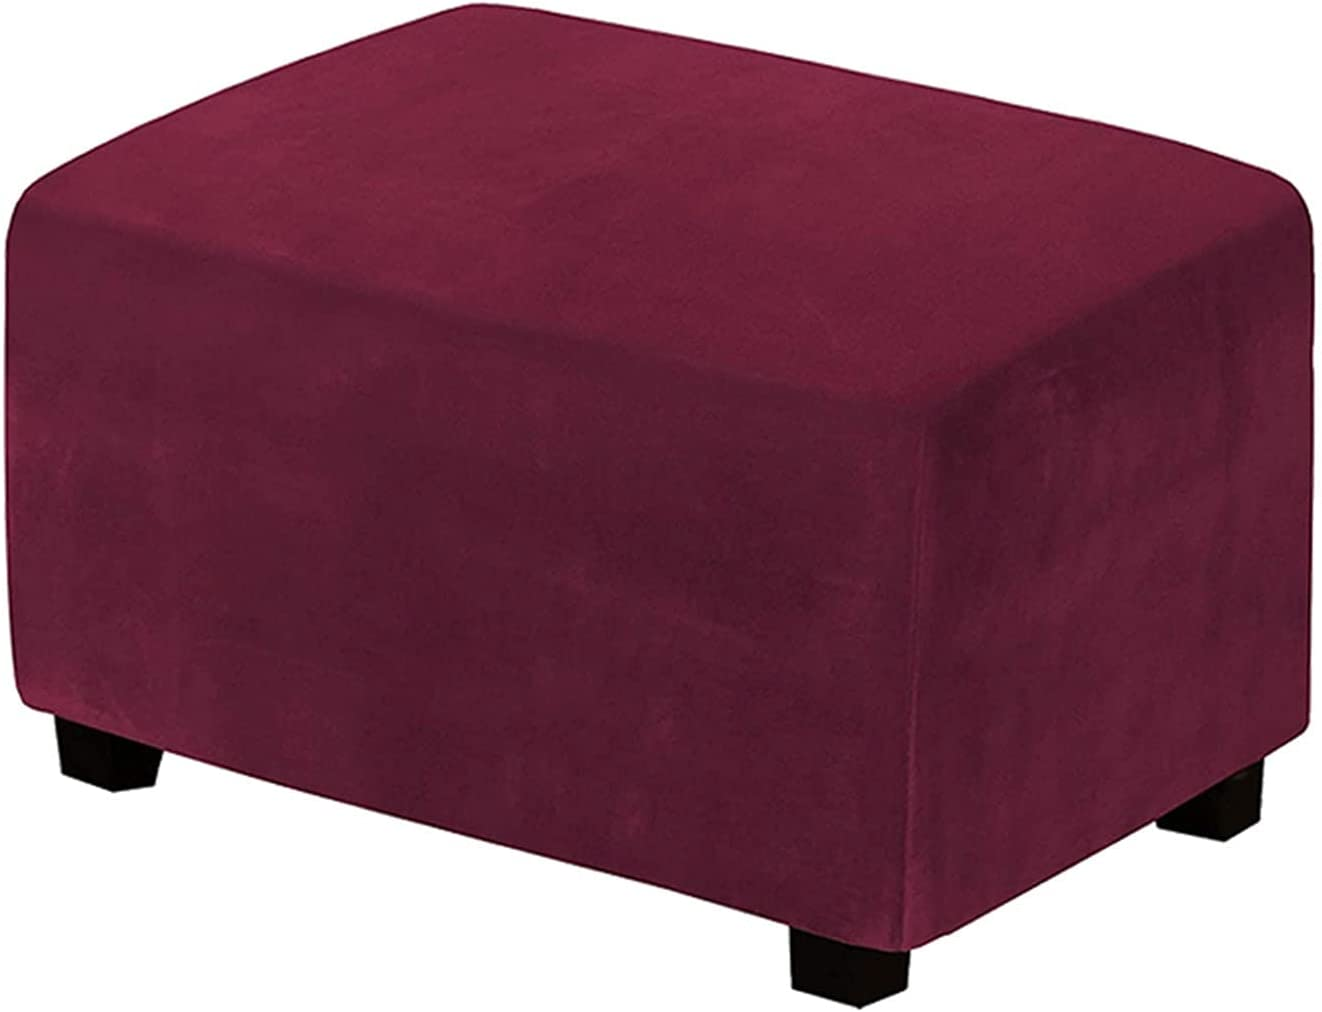 5% OFF YXLJC Ottoman Footstool Cover Elastic W Online limited product Protective Stretch